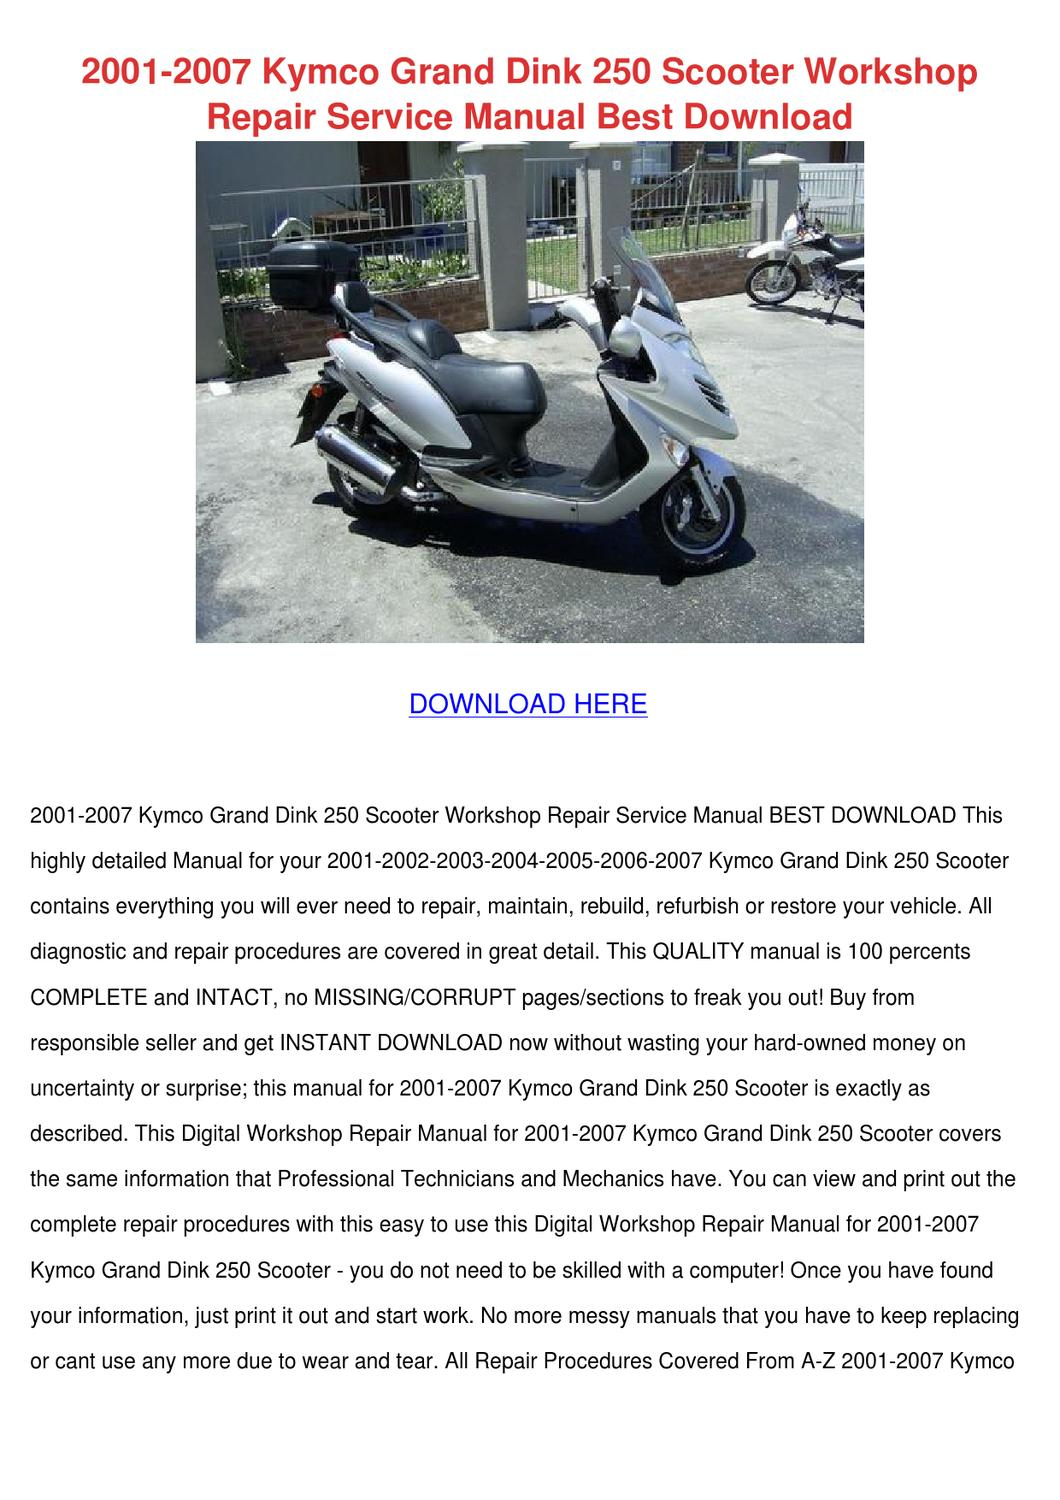 2001 2007 Kymco Grand Dink 250 Scooter Worksh by ReecePorterfield - issuu